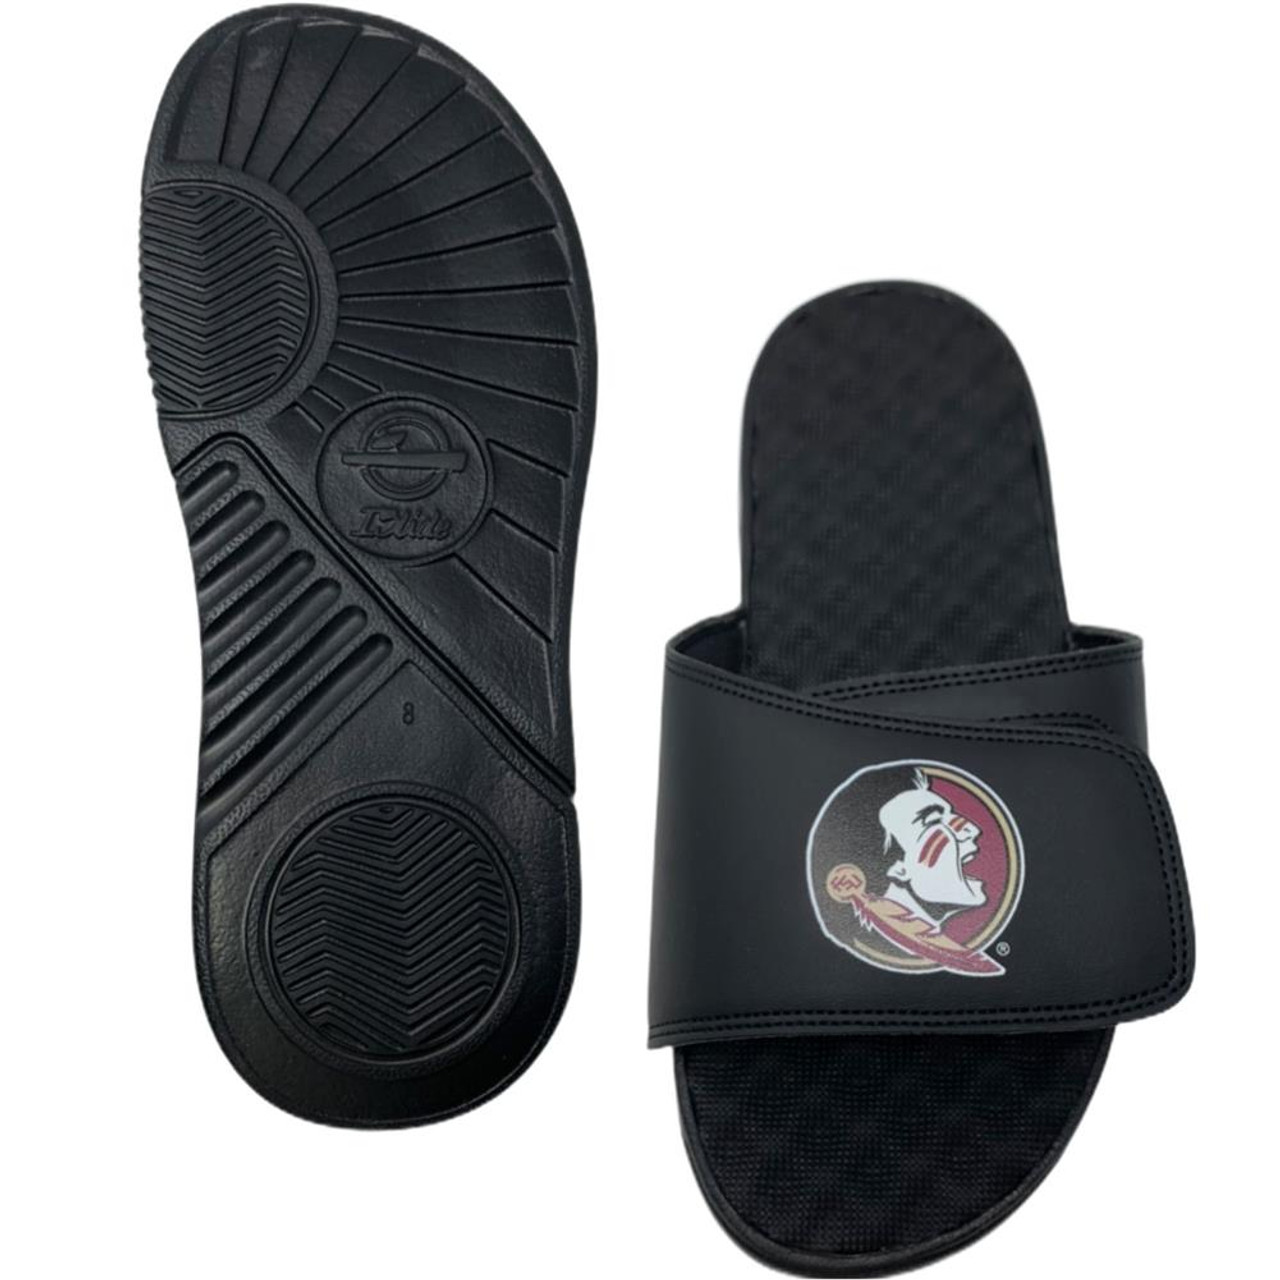 Milwaukee Bucks Slides ISlide Primary Adjustable Sandals